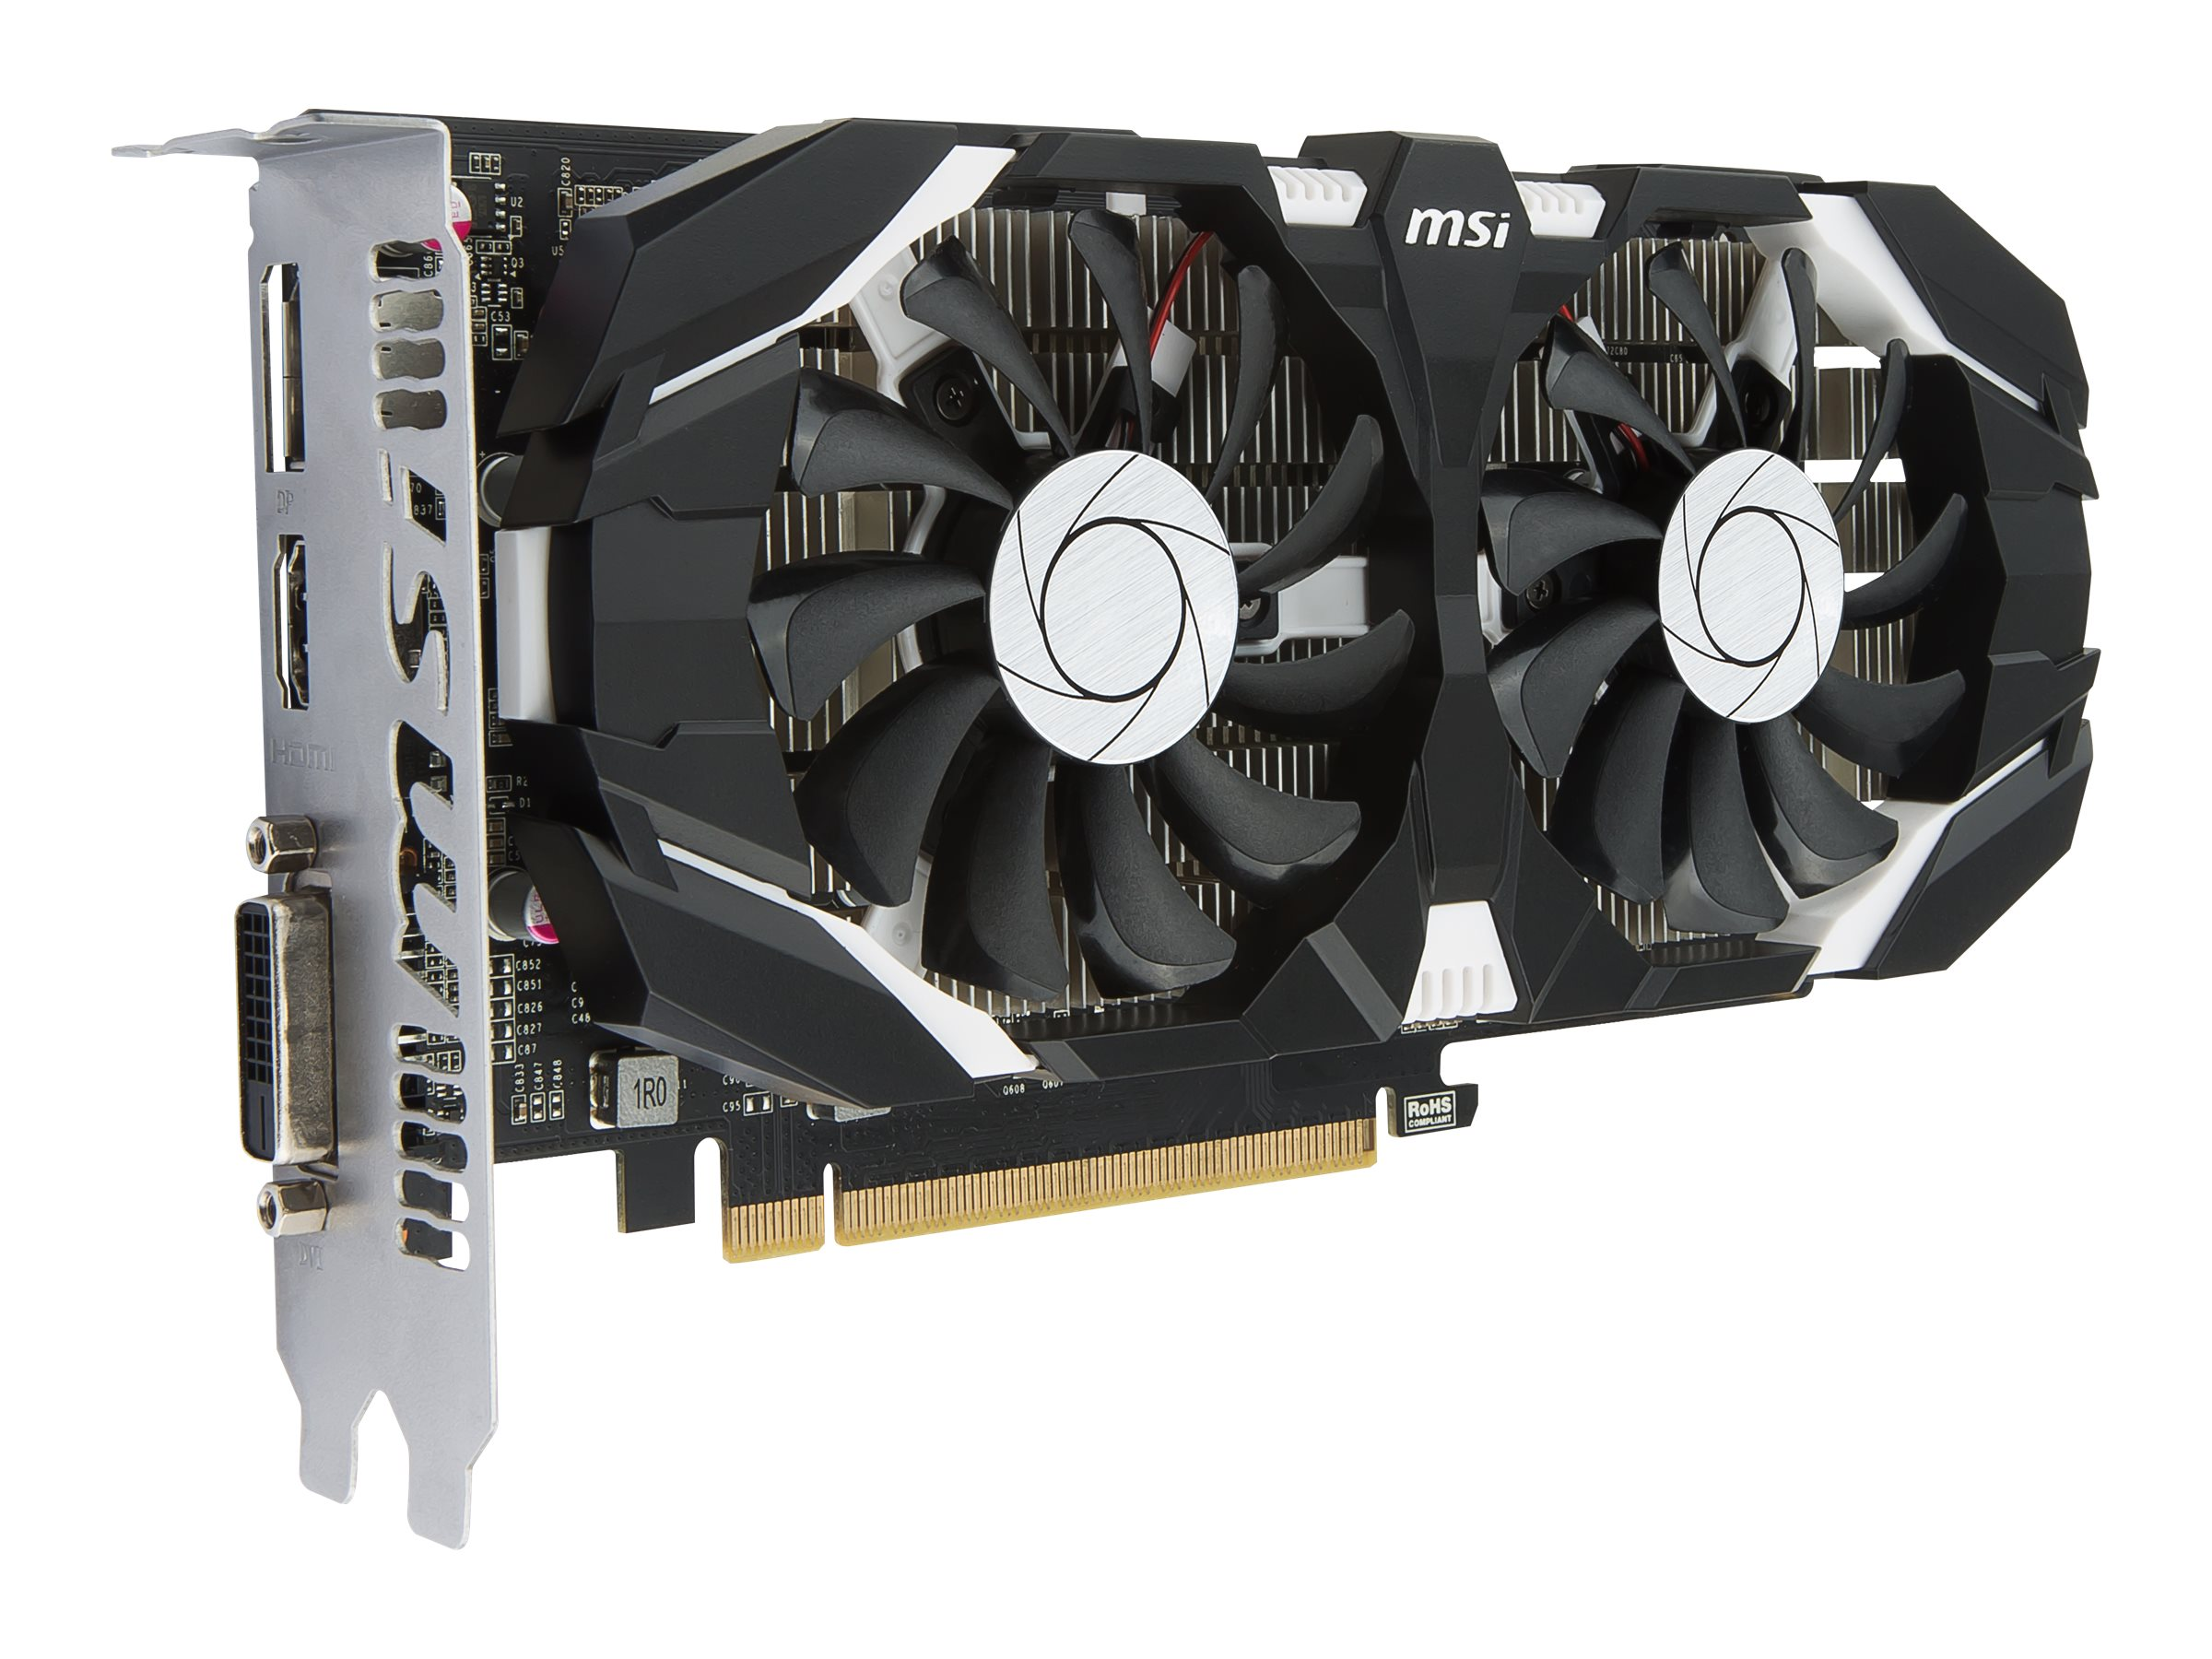 Microstar NVIDIA GeForce GTX 1050 PCIe 3.0 x16 Graphics Card, 3GB GDDR5, GTX 1050 2GT OC